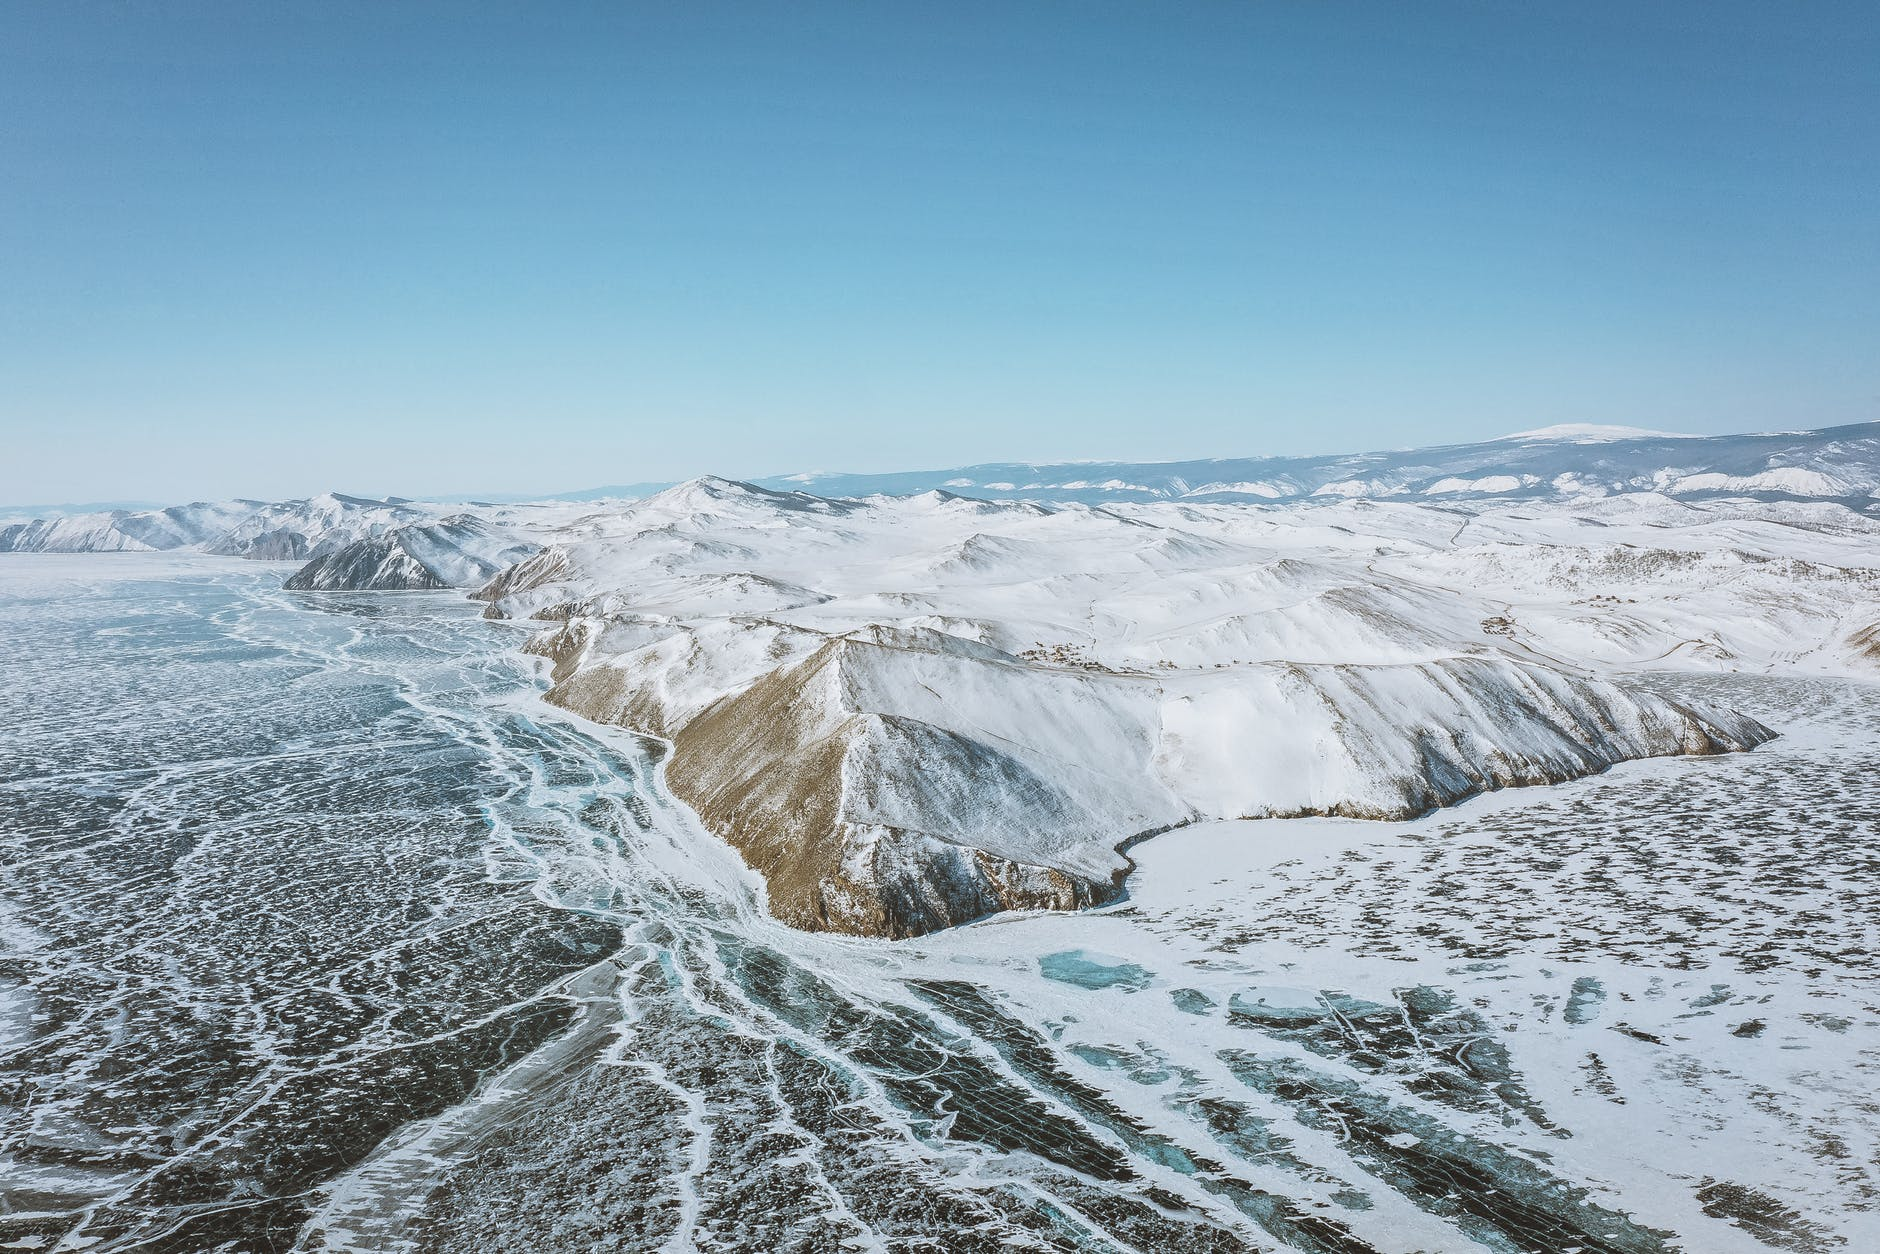 snowy mountains on icy sea in winter